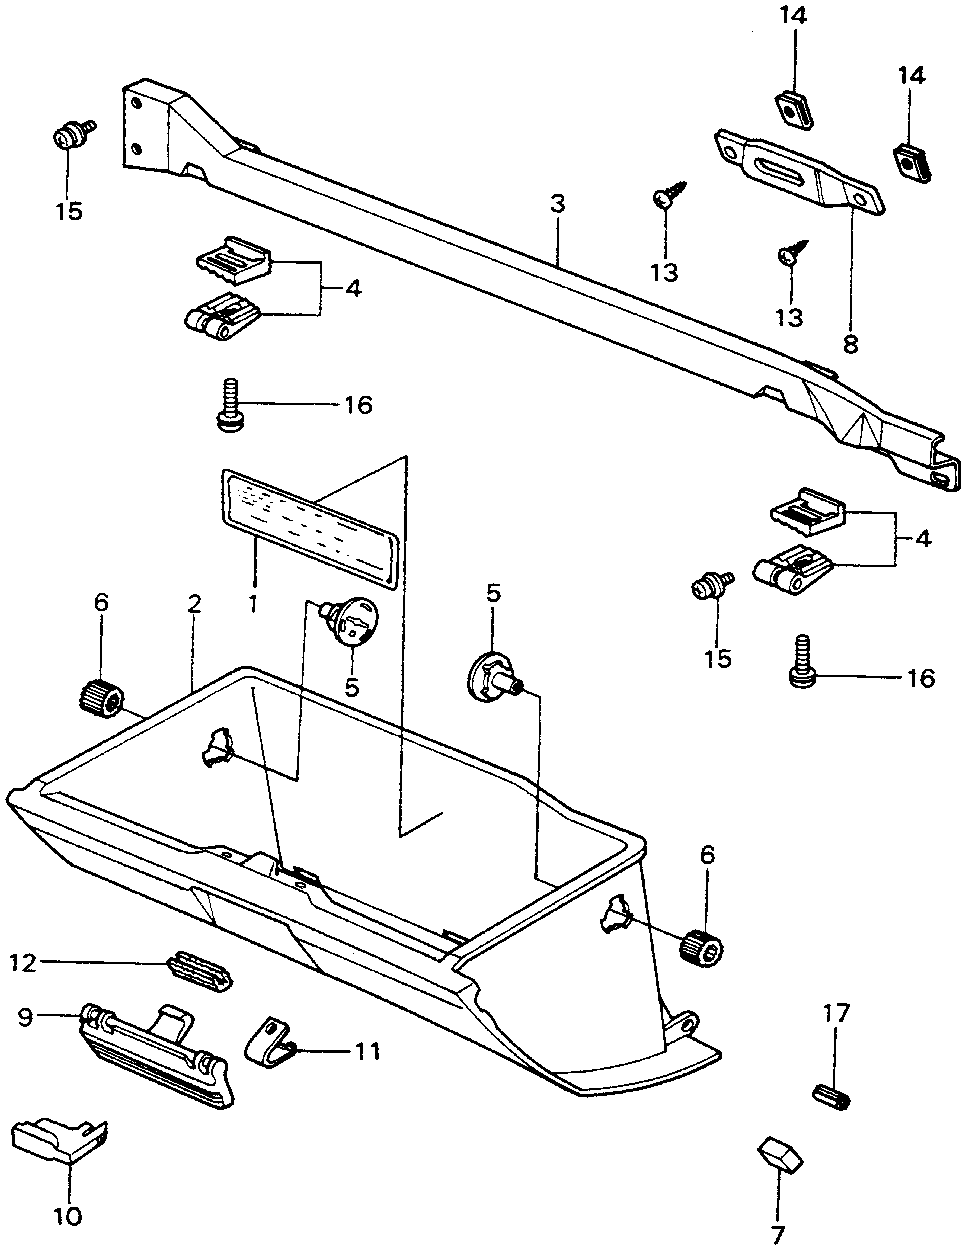 42762-SA0-751 - PLACARD, SPECIFICATION